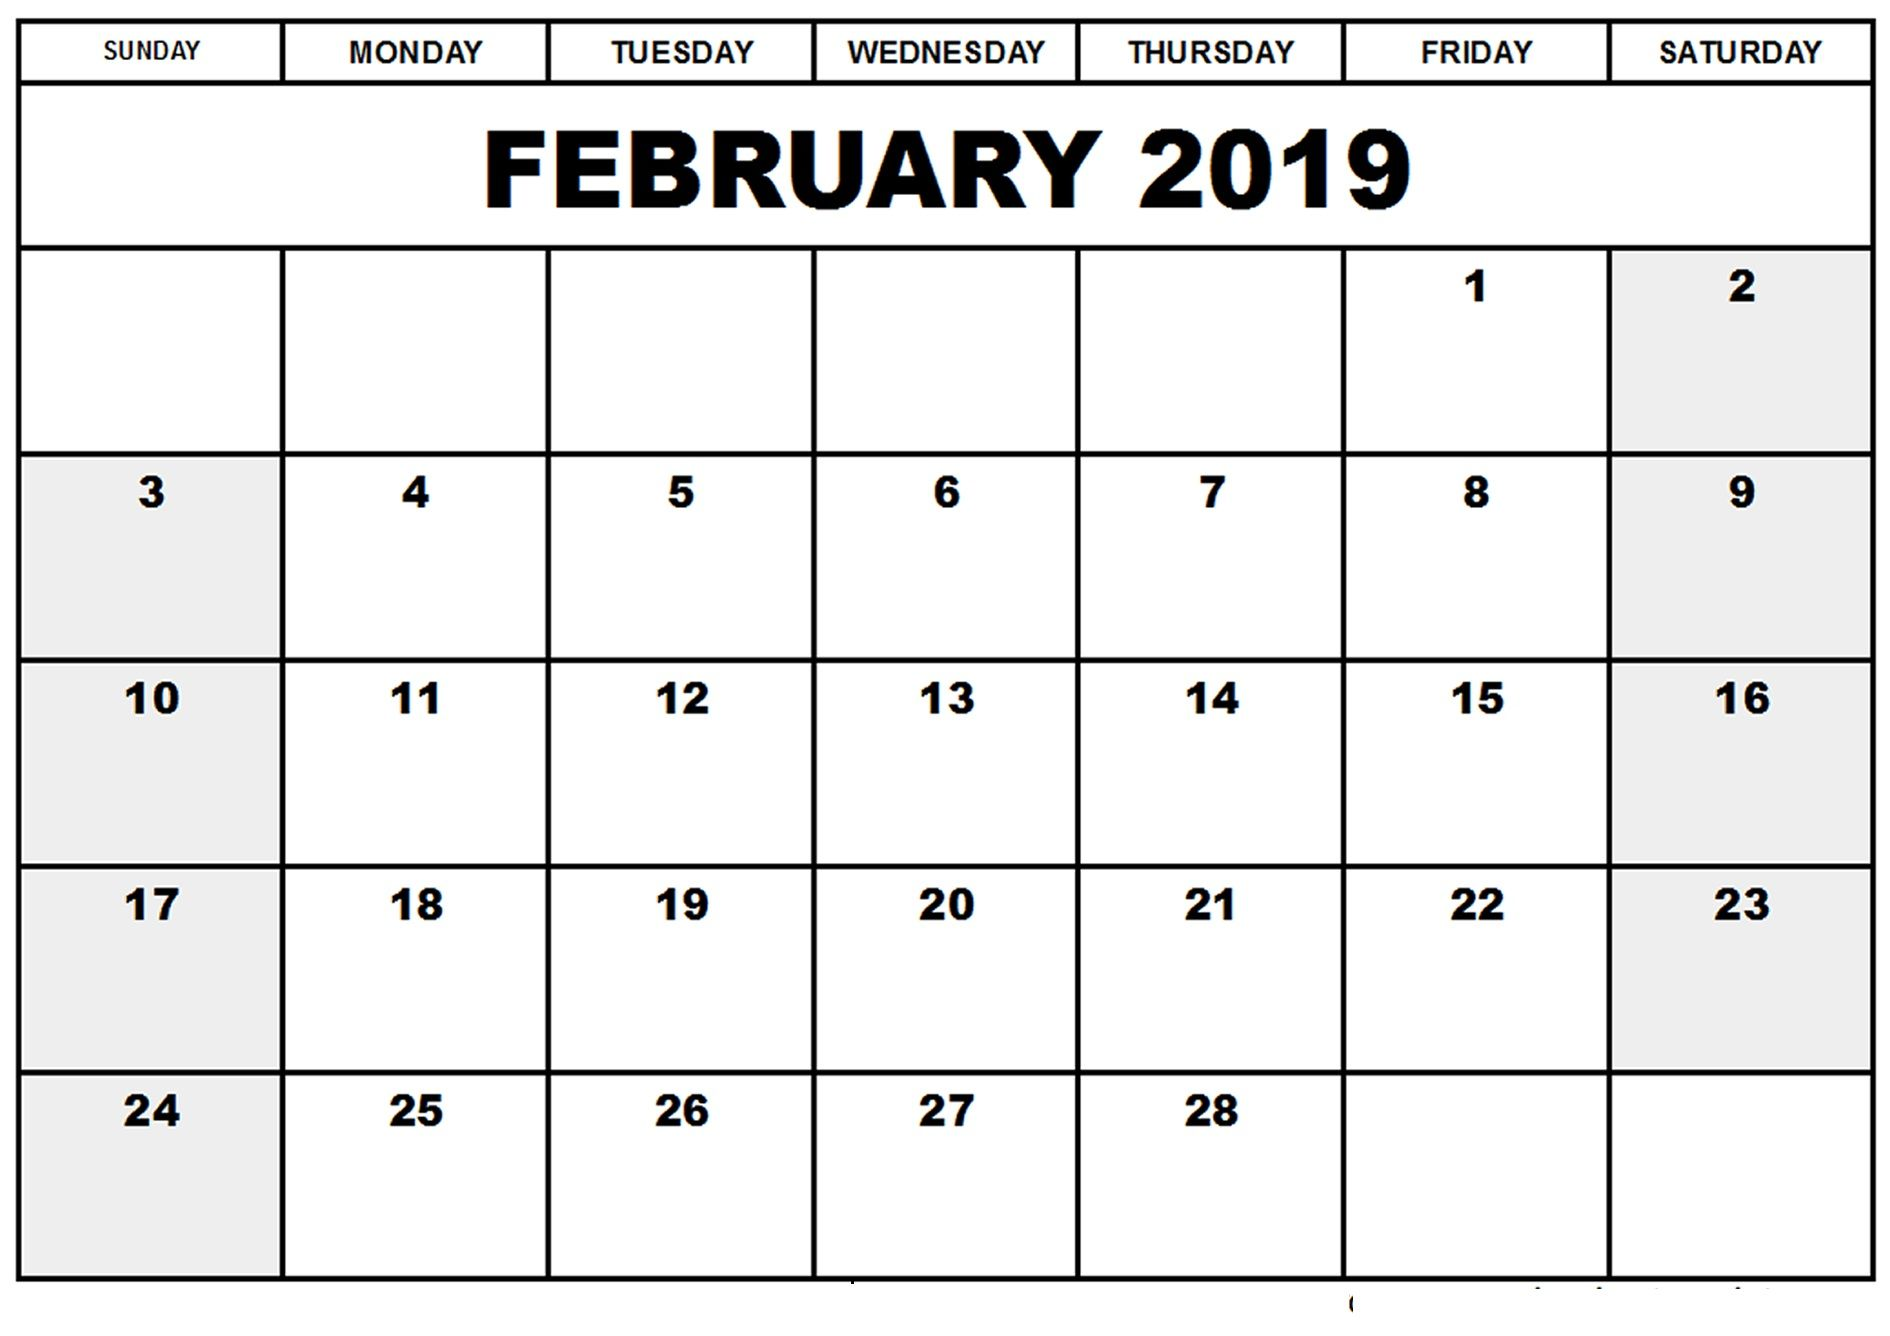 February Calendar 2019 Template February Calendar 2019 Manage Work